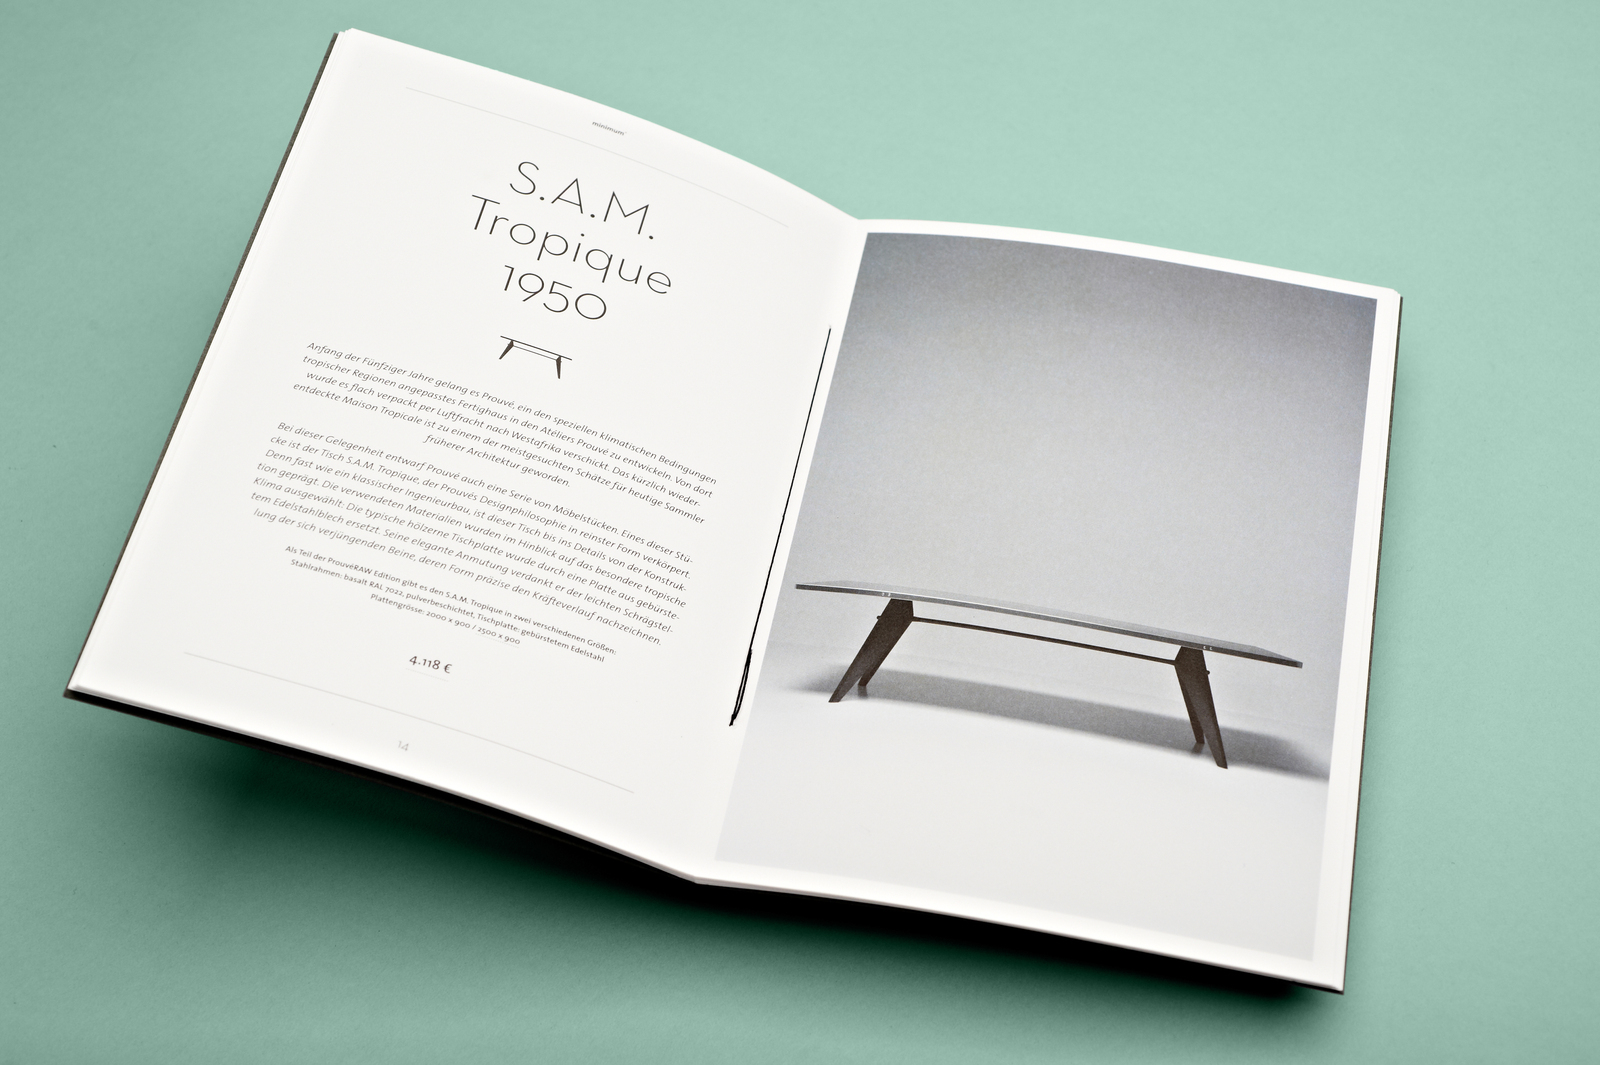 The Prouvé RAW collection is the result of the collaboration of G-Star, Prouvé and Vitra. The presentation of the extraordinary furniture at minimum and at the Qubique fair was developed for a catalog, which was numbered and numbered by hand. The layout of the catalog and the materials used cite the style of the 1940s - the period when the first sketches by Jean Prouvé were created.